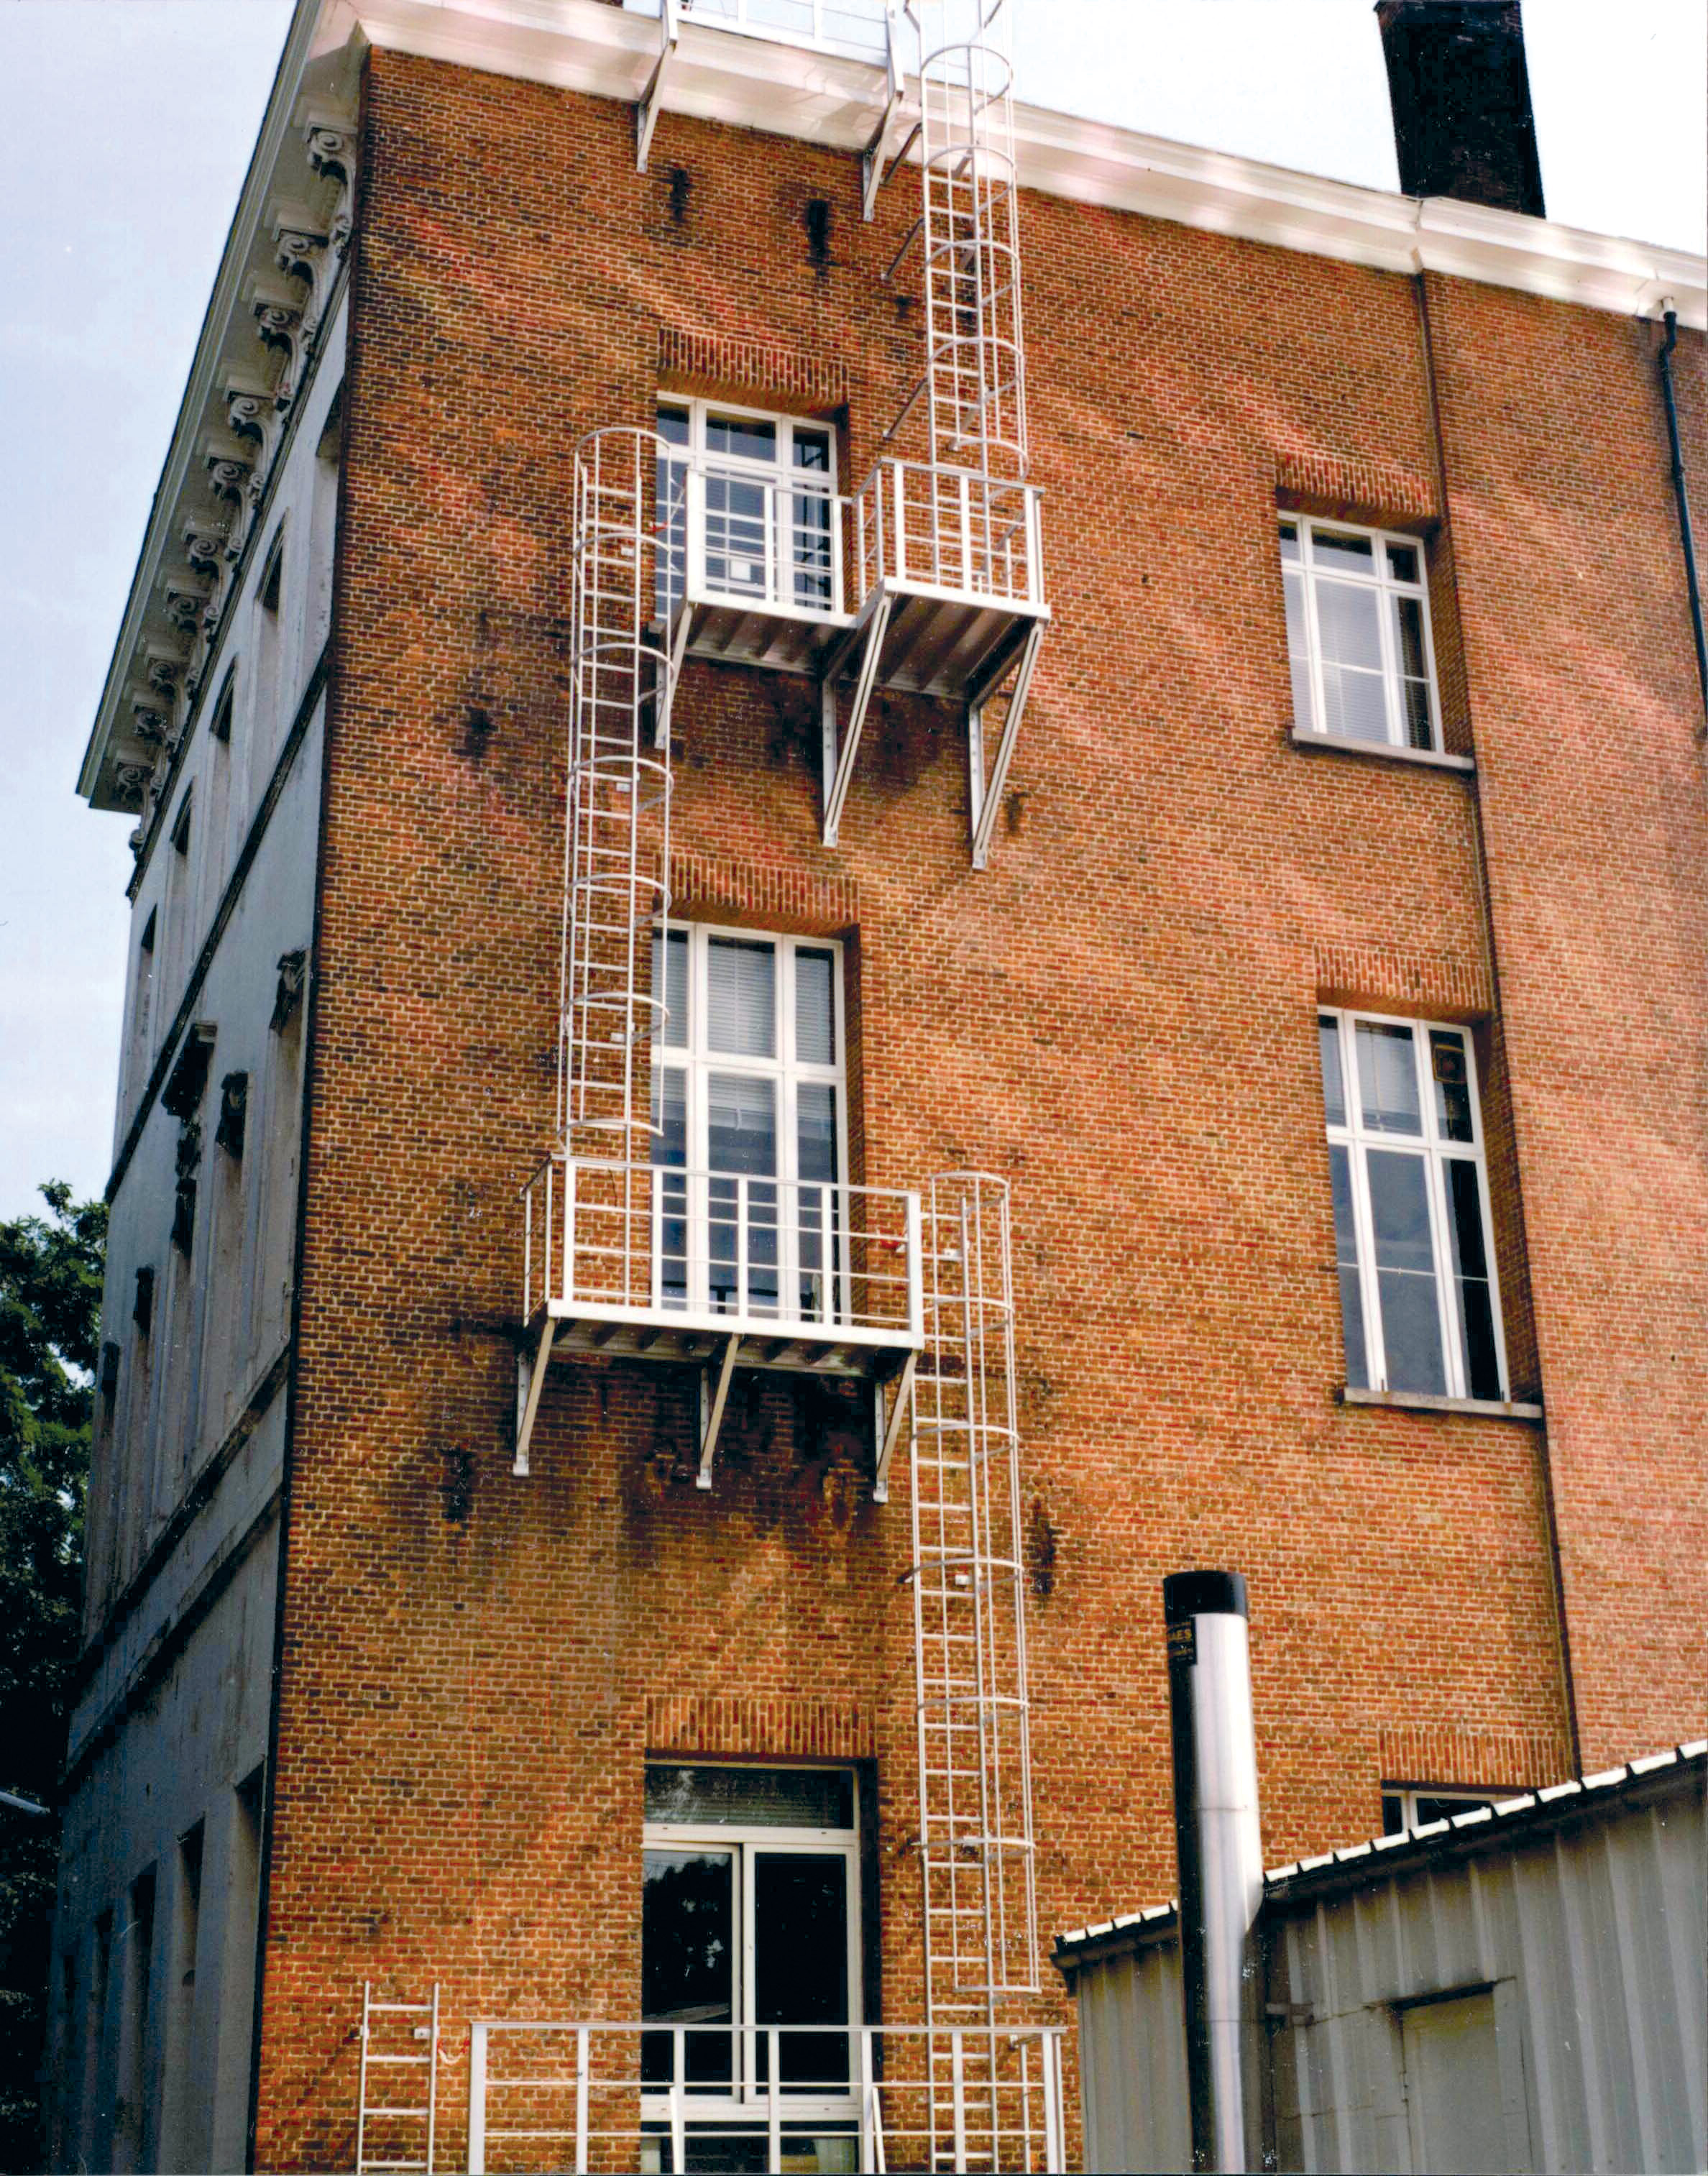 JOMY fire escape ladder. The most economic ladder is the fixed ladder with safety hoops according to regulations. For more then 40 years JOMY makes those ladders and adapts them to each specific situation.